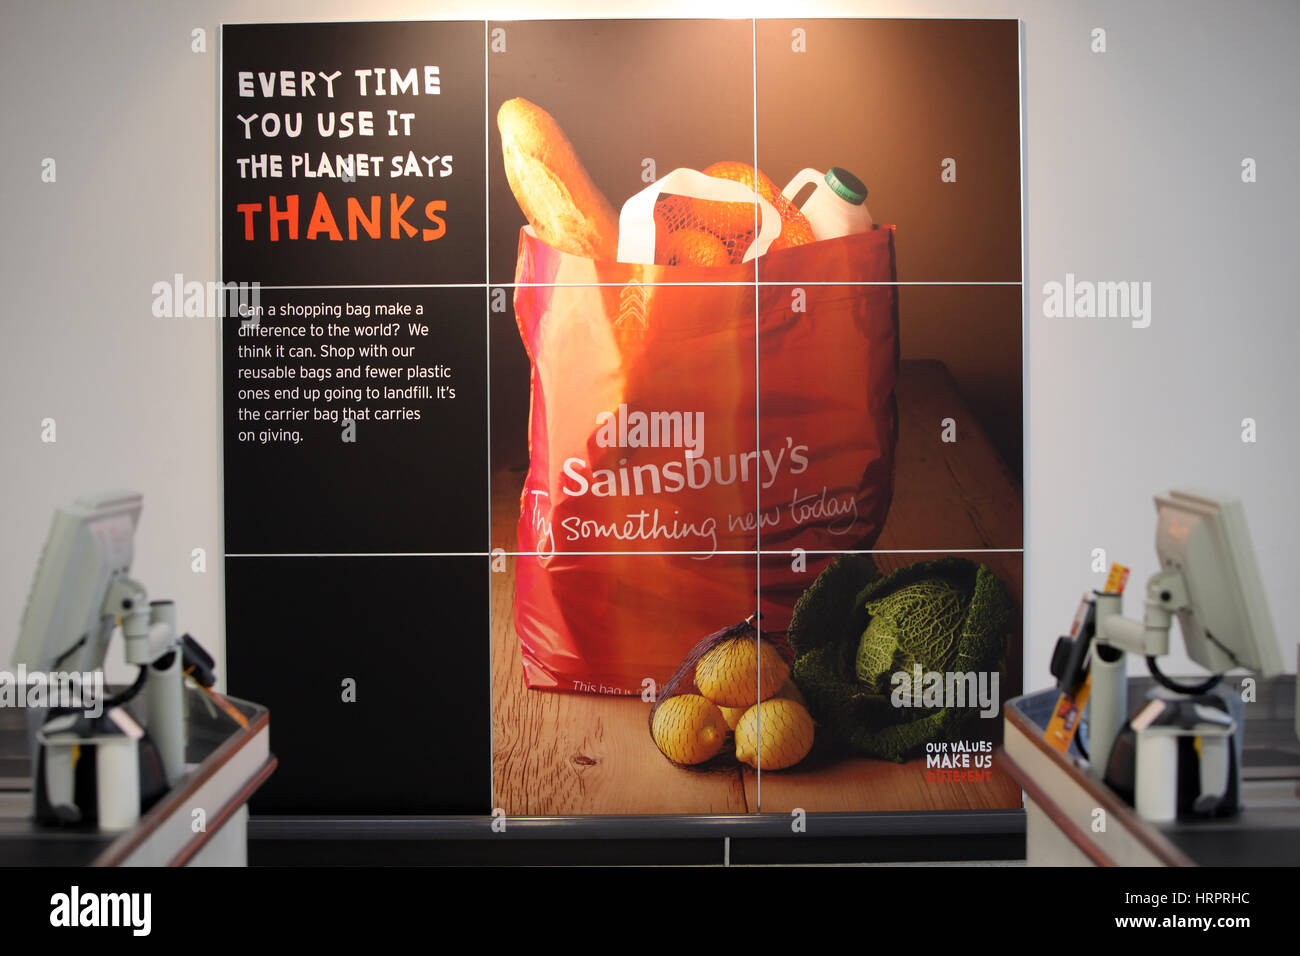 Sainsburys supermarket in Colne , UK. Every Time You Use Us The Planet Says Thanks sign - Stock Image